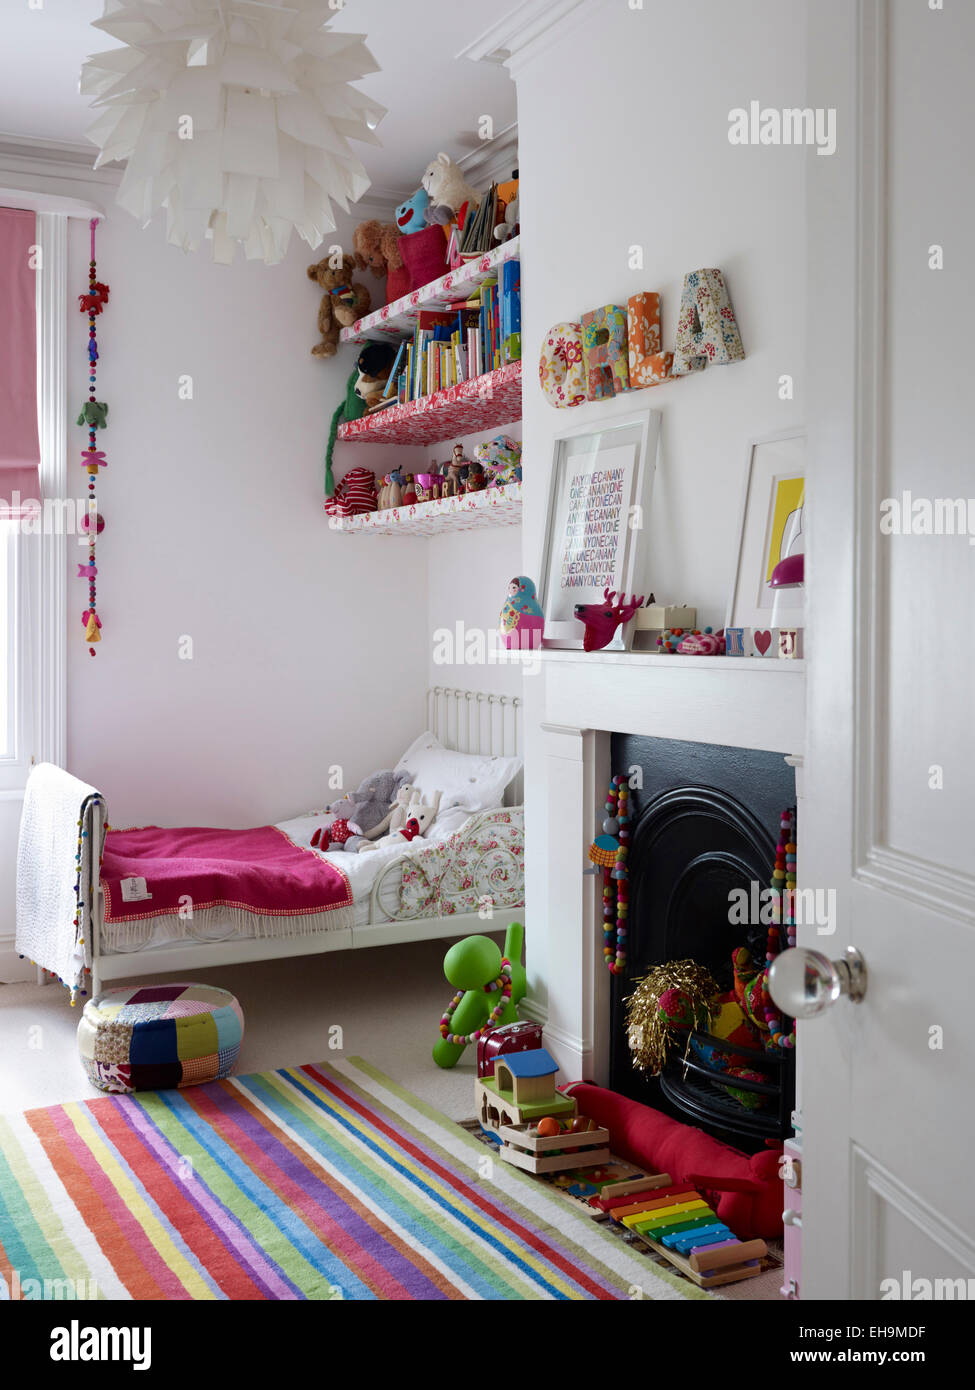 Bed and striped rug in white child's bedroom, residential house, Port Hall Street, Brighton, East Sussex, UK - Stock Image